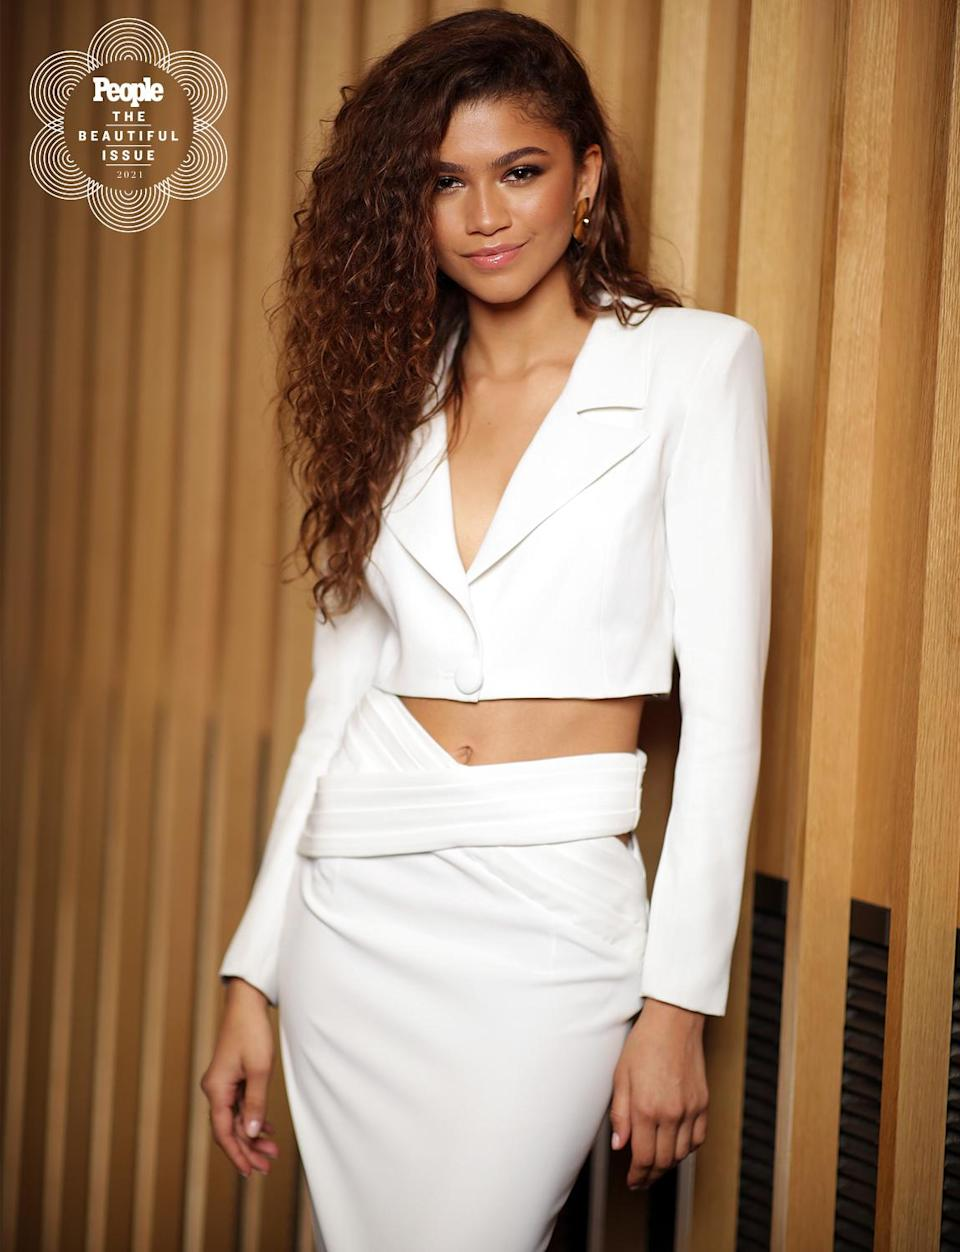 "<p>What didn't the 24-year-old accomplish this year? The <em>Euphoria</em> actress became the youngest woman to win best actress in a drama series at the Emmys, and was honored with the fifth-ever SeeHer Award at the 2021 Critics Choice Awards. Her work on-screen — and activism in real life — is earning her praise. </p> <p><a href=""https://people.com/movies/halle-berry-says-zendaya-proof-positive-changes-hollywood/"" rel=""nofollow noopener"" target=""_blank"" data-ylk=""slk:As Halle Berry told reporters"" class=""link rapid-noclick-resp"">As Halle Berry told reporters</a> in January, ""At 24, that she can have an idea and go get it done and get enough support behind her to get that done and to give her the power and to keep the creativity, I think that says so much for where we have gotten and that is what makes me want to keep fighting, because of Zendaya, at 24, a Black woman can do that.""</p>"